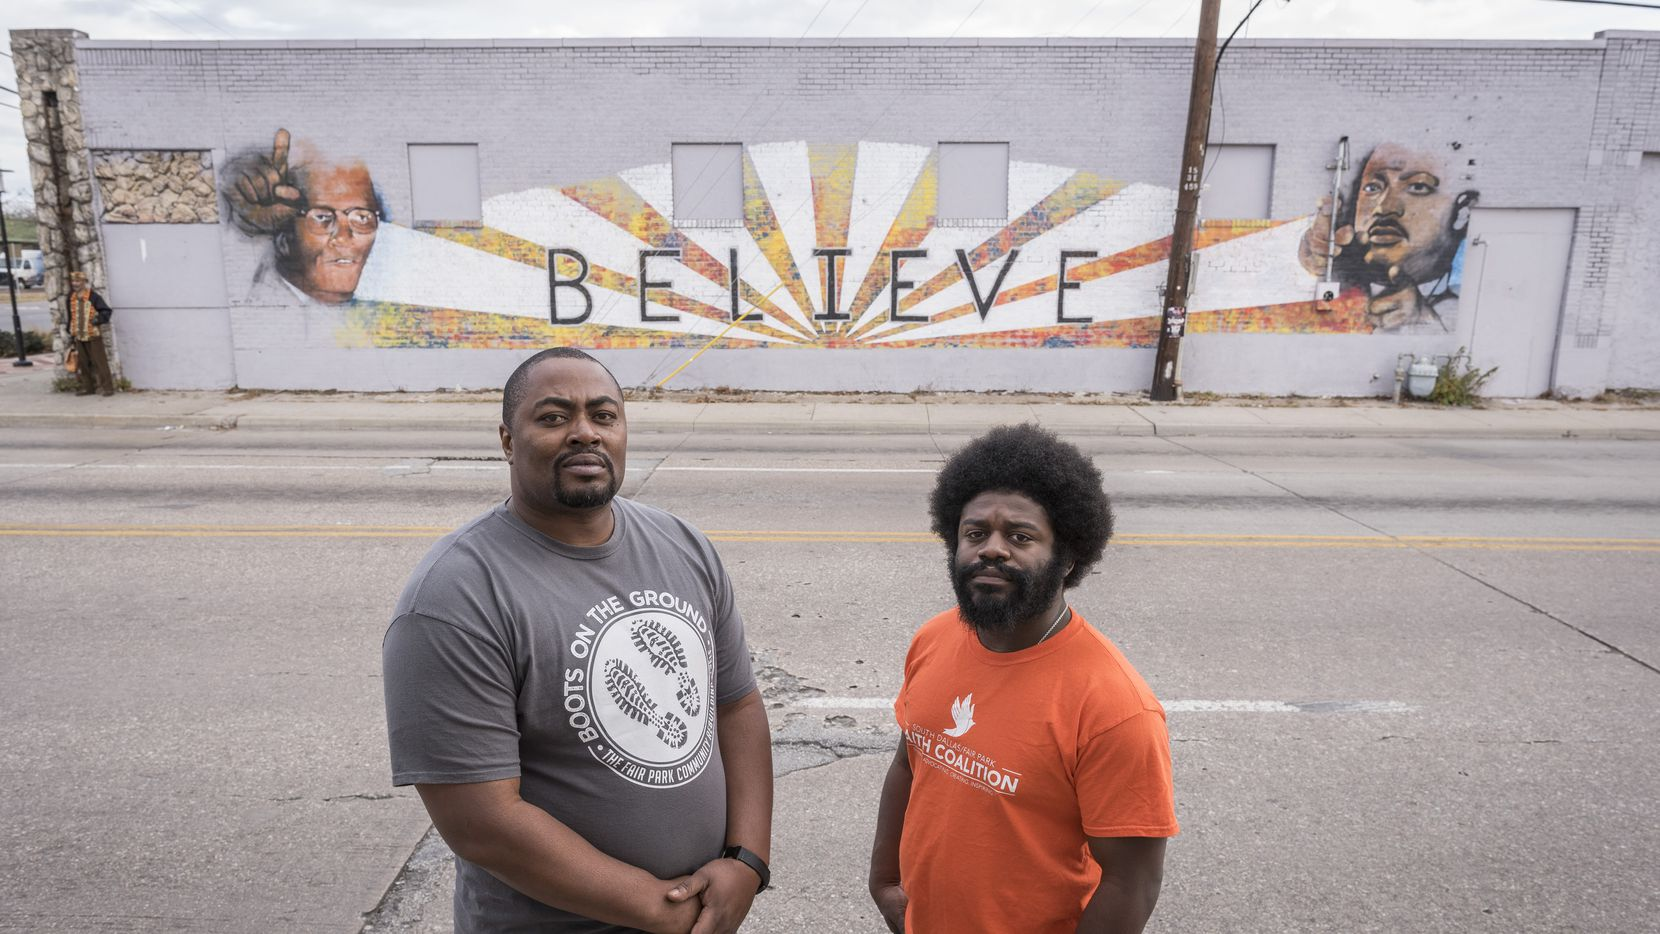 Jay Scroggins, left, and Rev. George Battle III plan to open the Fair Park District Entrepreneur Center in the building in the background at Martin Luther King Jr. Blvd. and Malcom X Blvd.  The goal of the center is to provide tools to local residents whoÕd like to grow their business and to create entrepreneurs who help meet the neighborhoodÕs needs   (Rex C. Curry/Special Contributor)